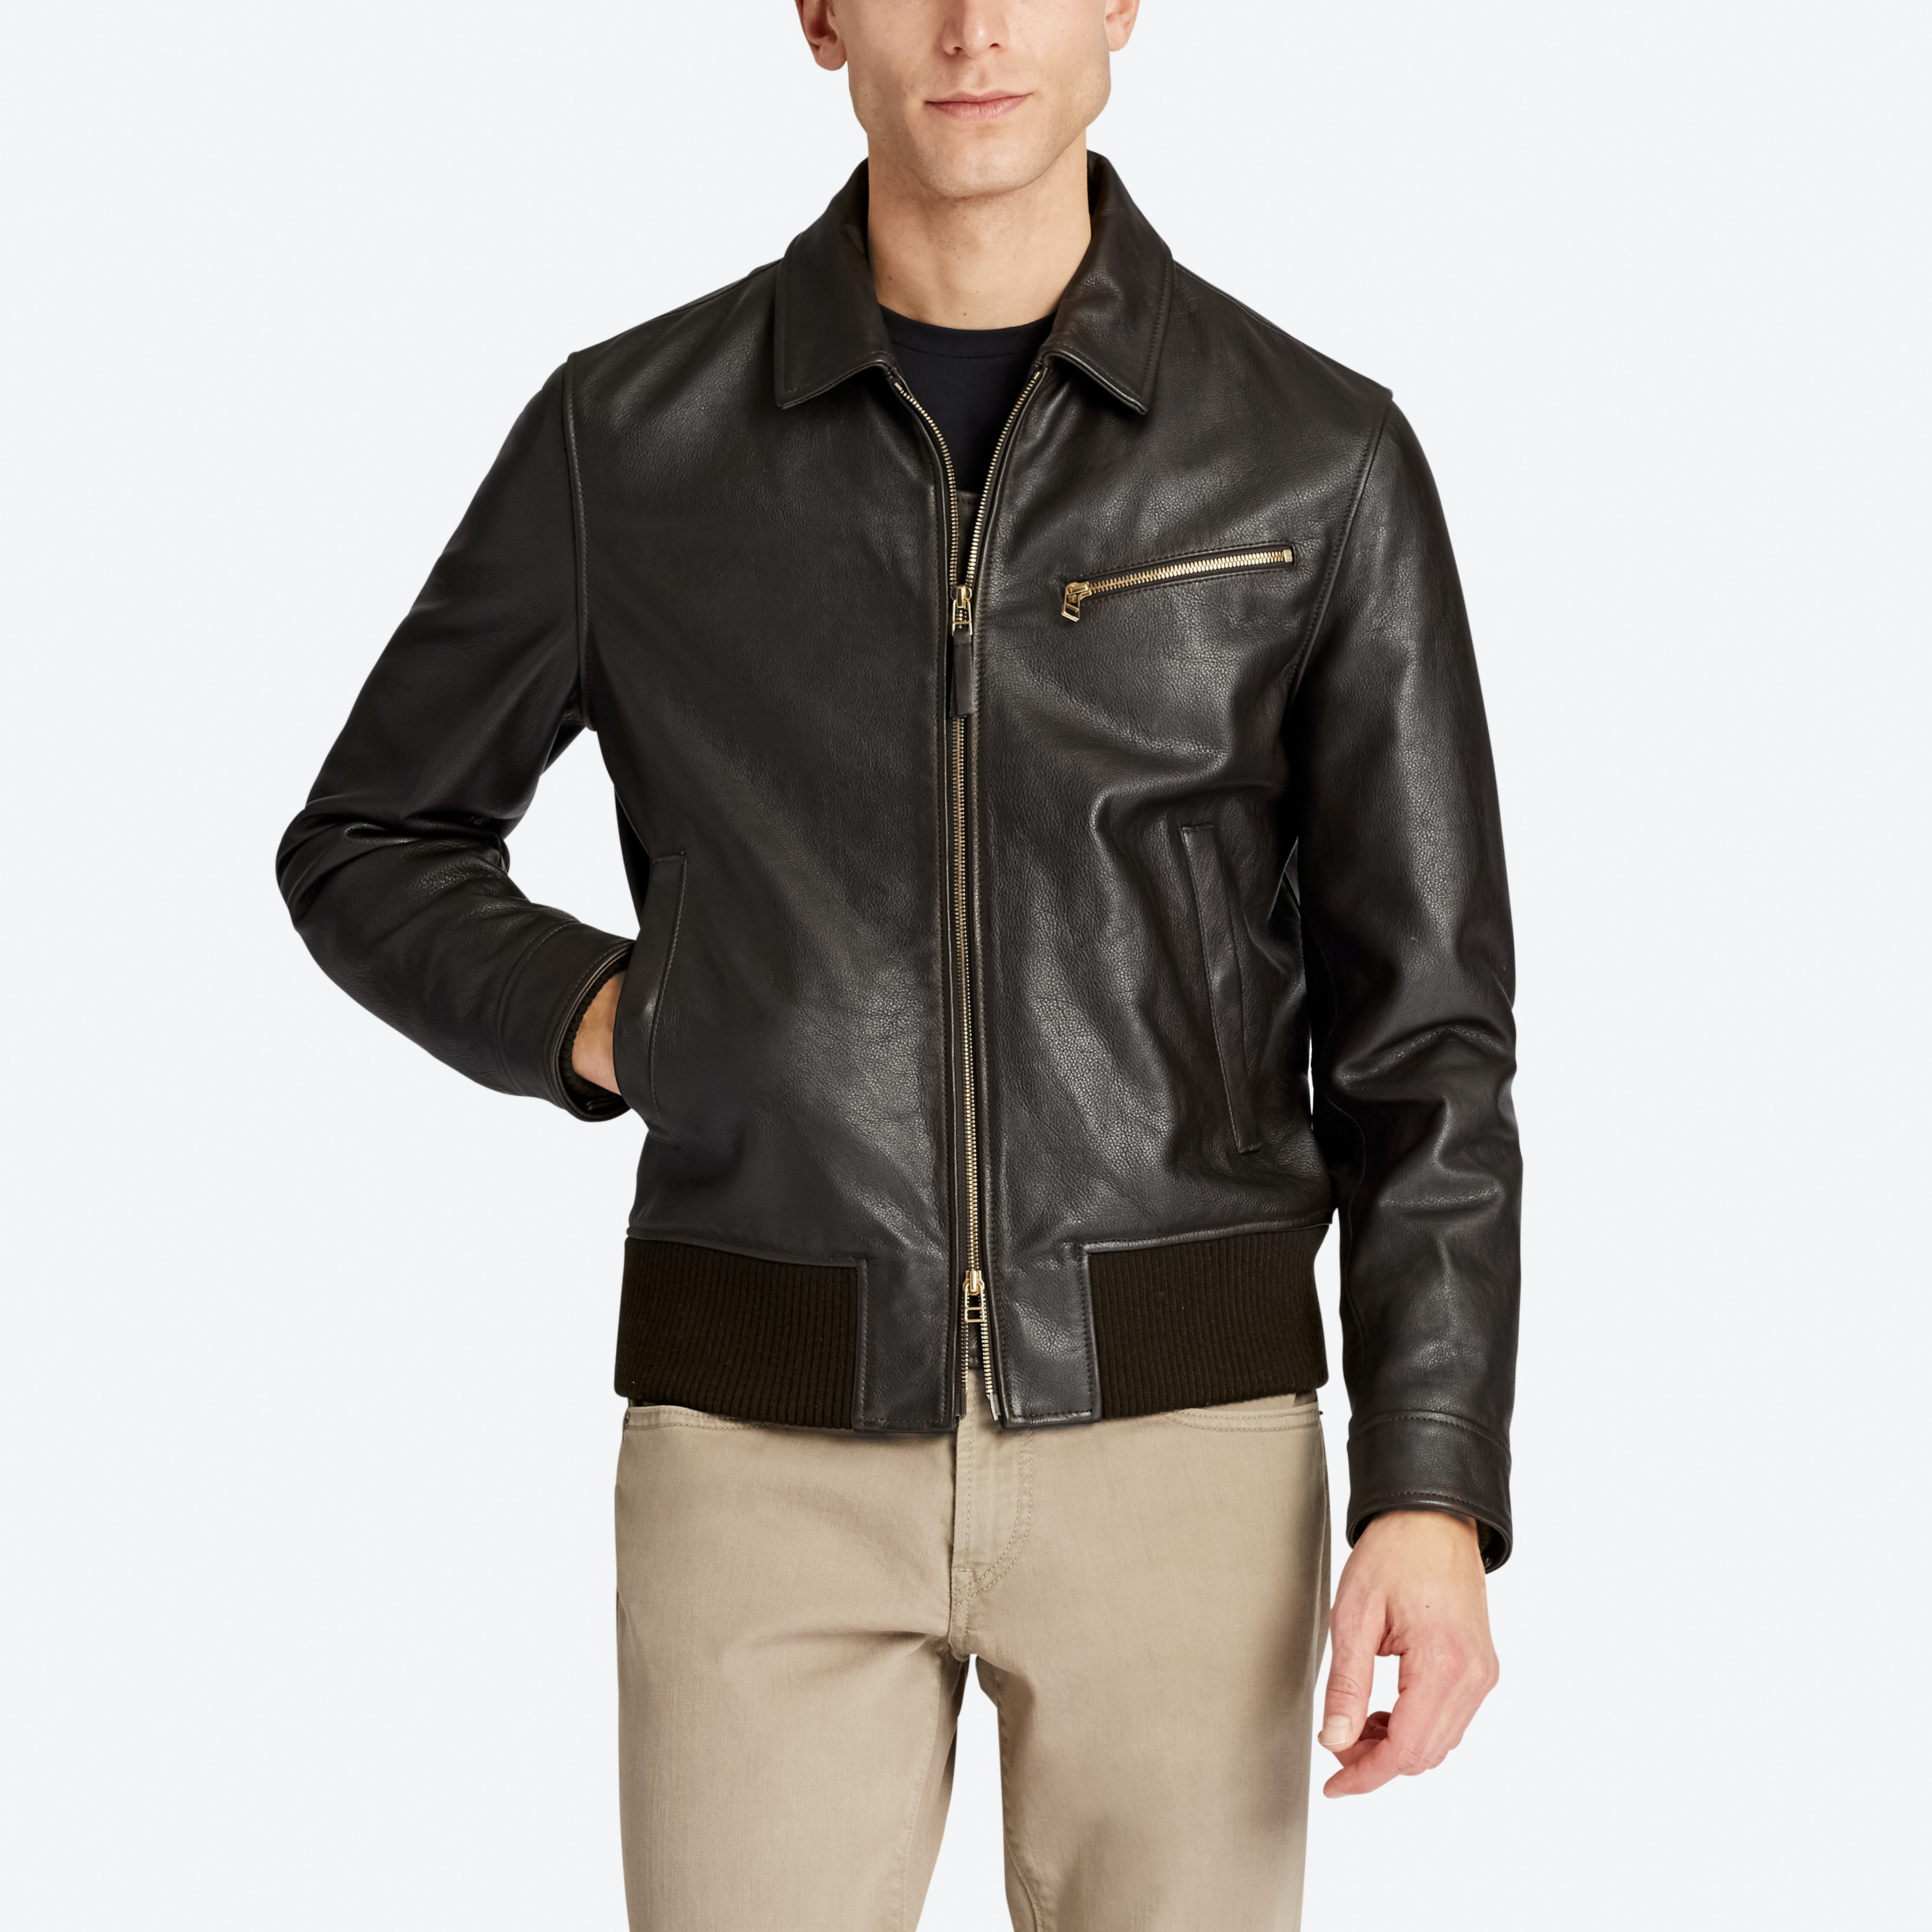 The Leather Bomber Jacket